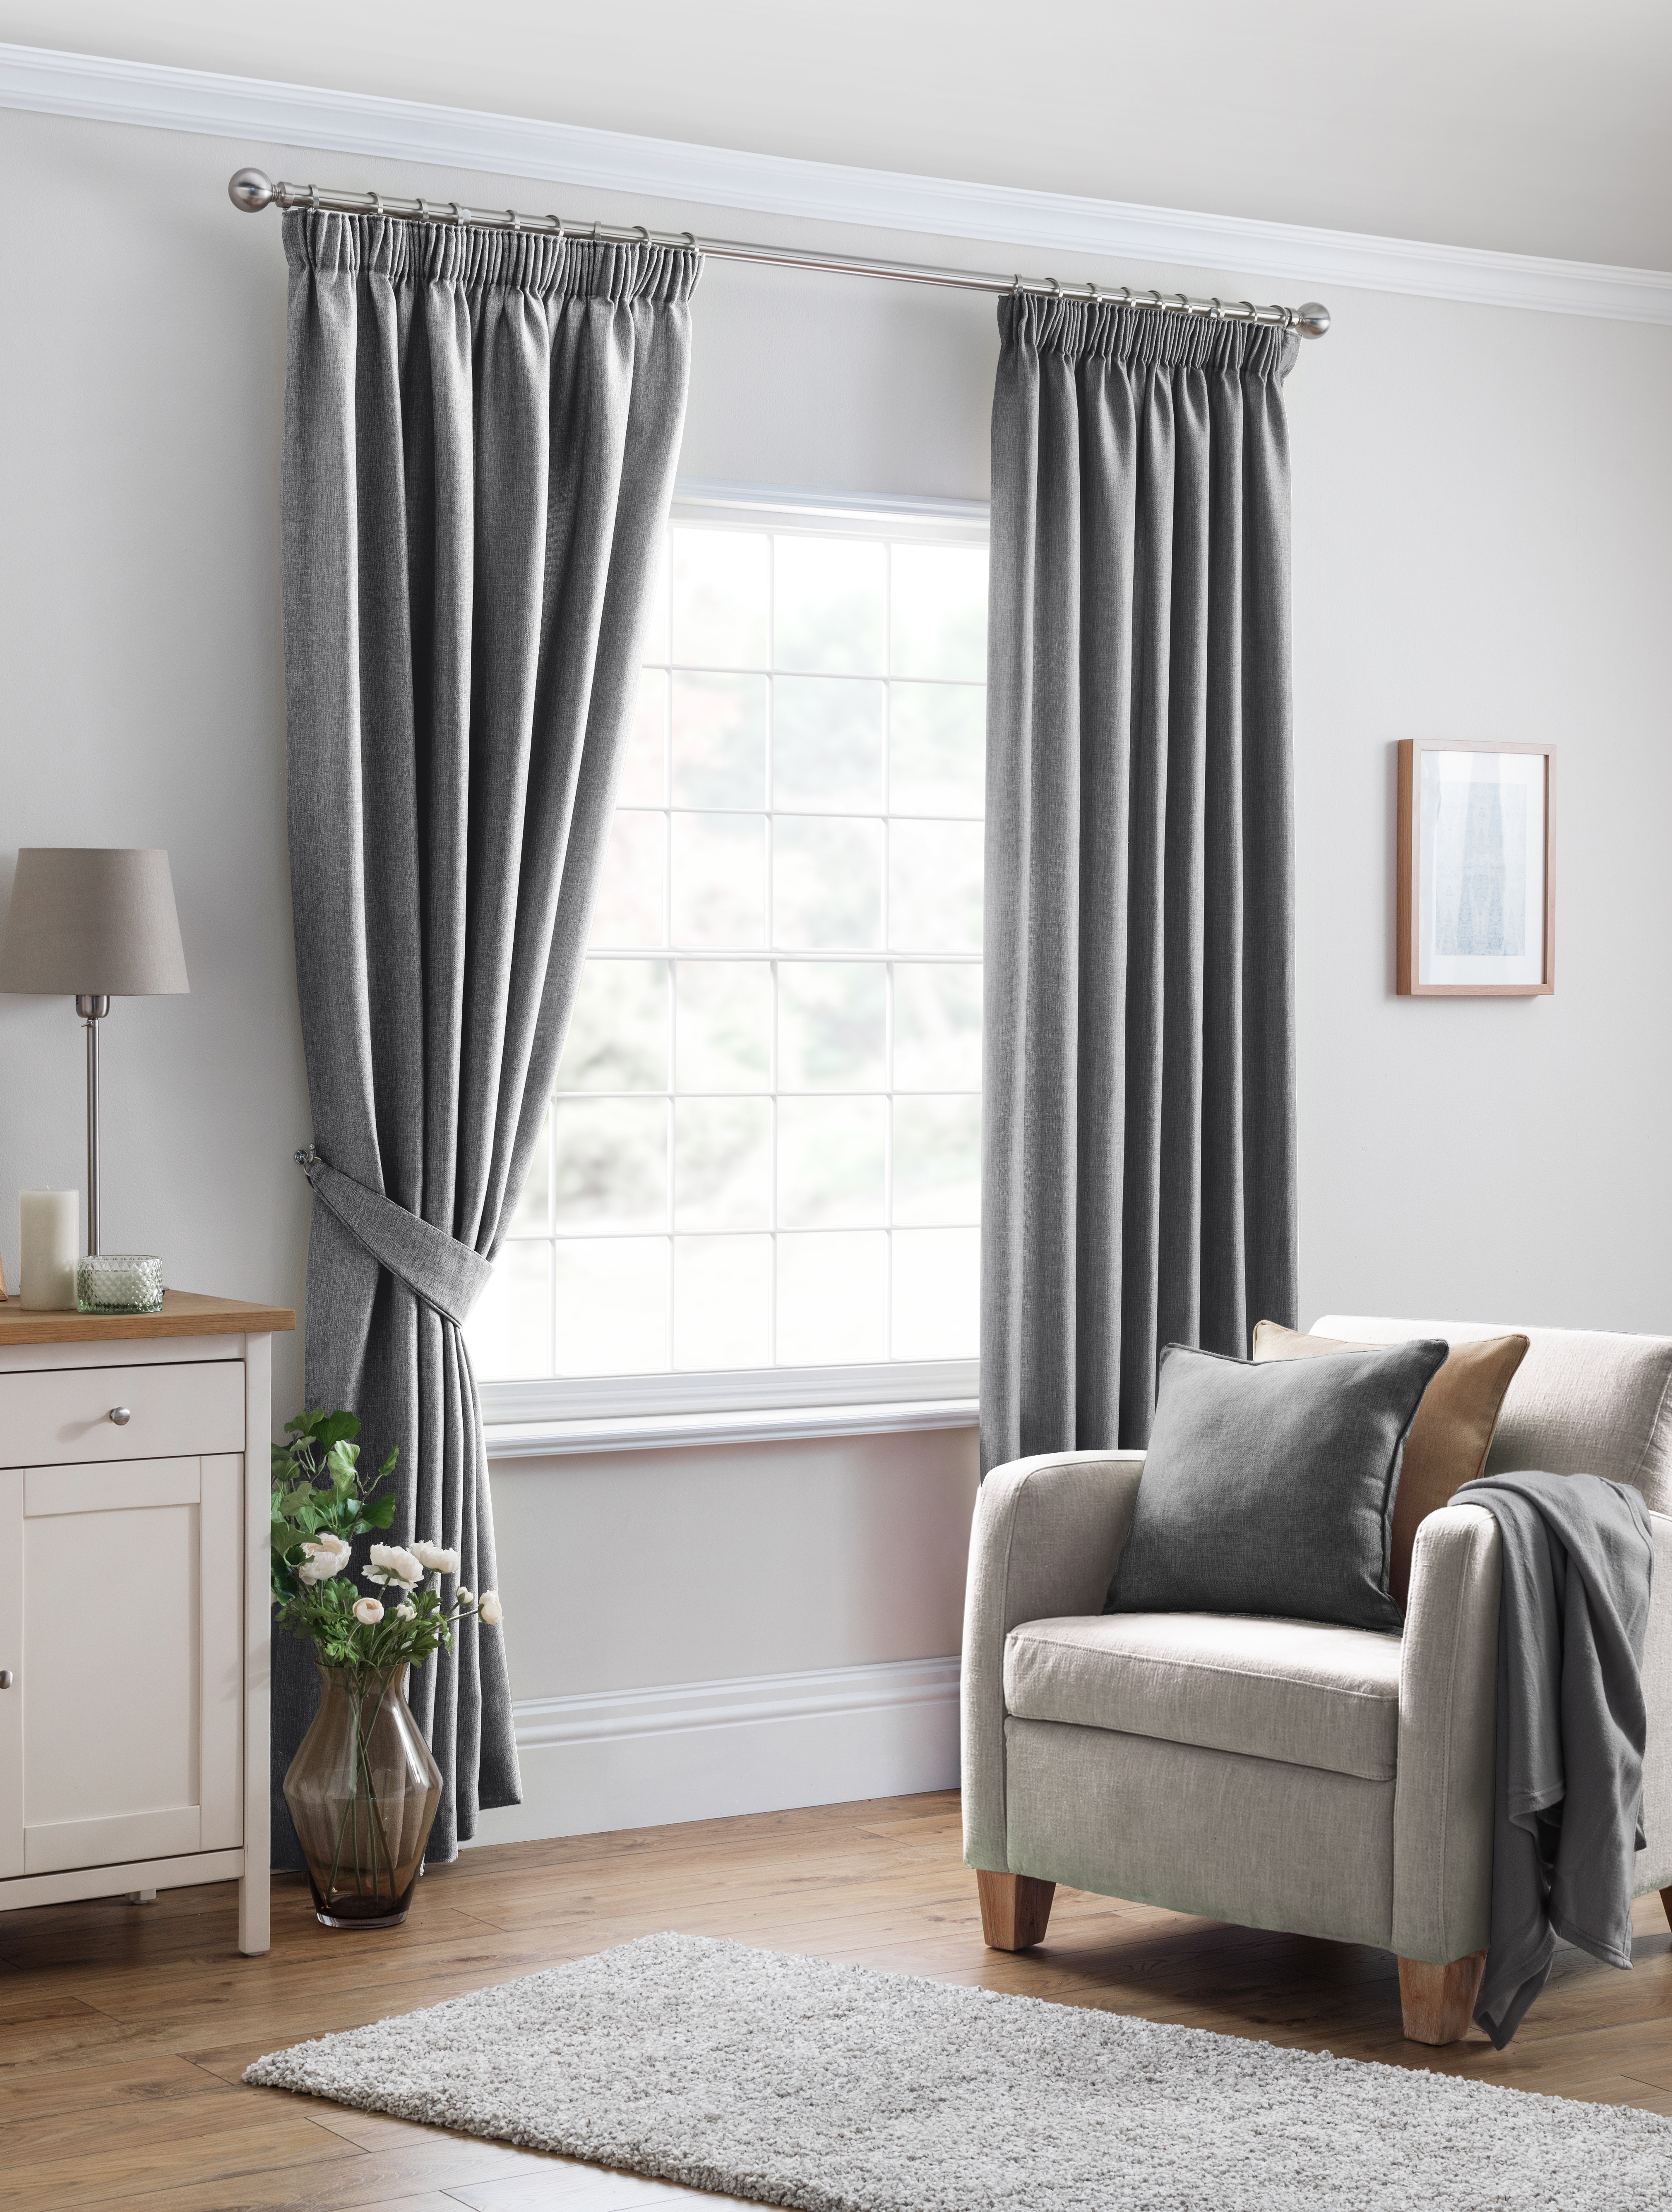 ready pleat tape furnishings in or curtain curtains belfield made pencil mauve top lined product by mariposa